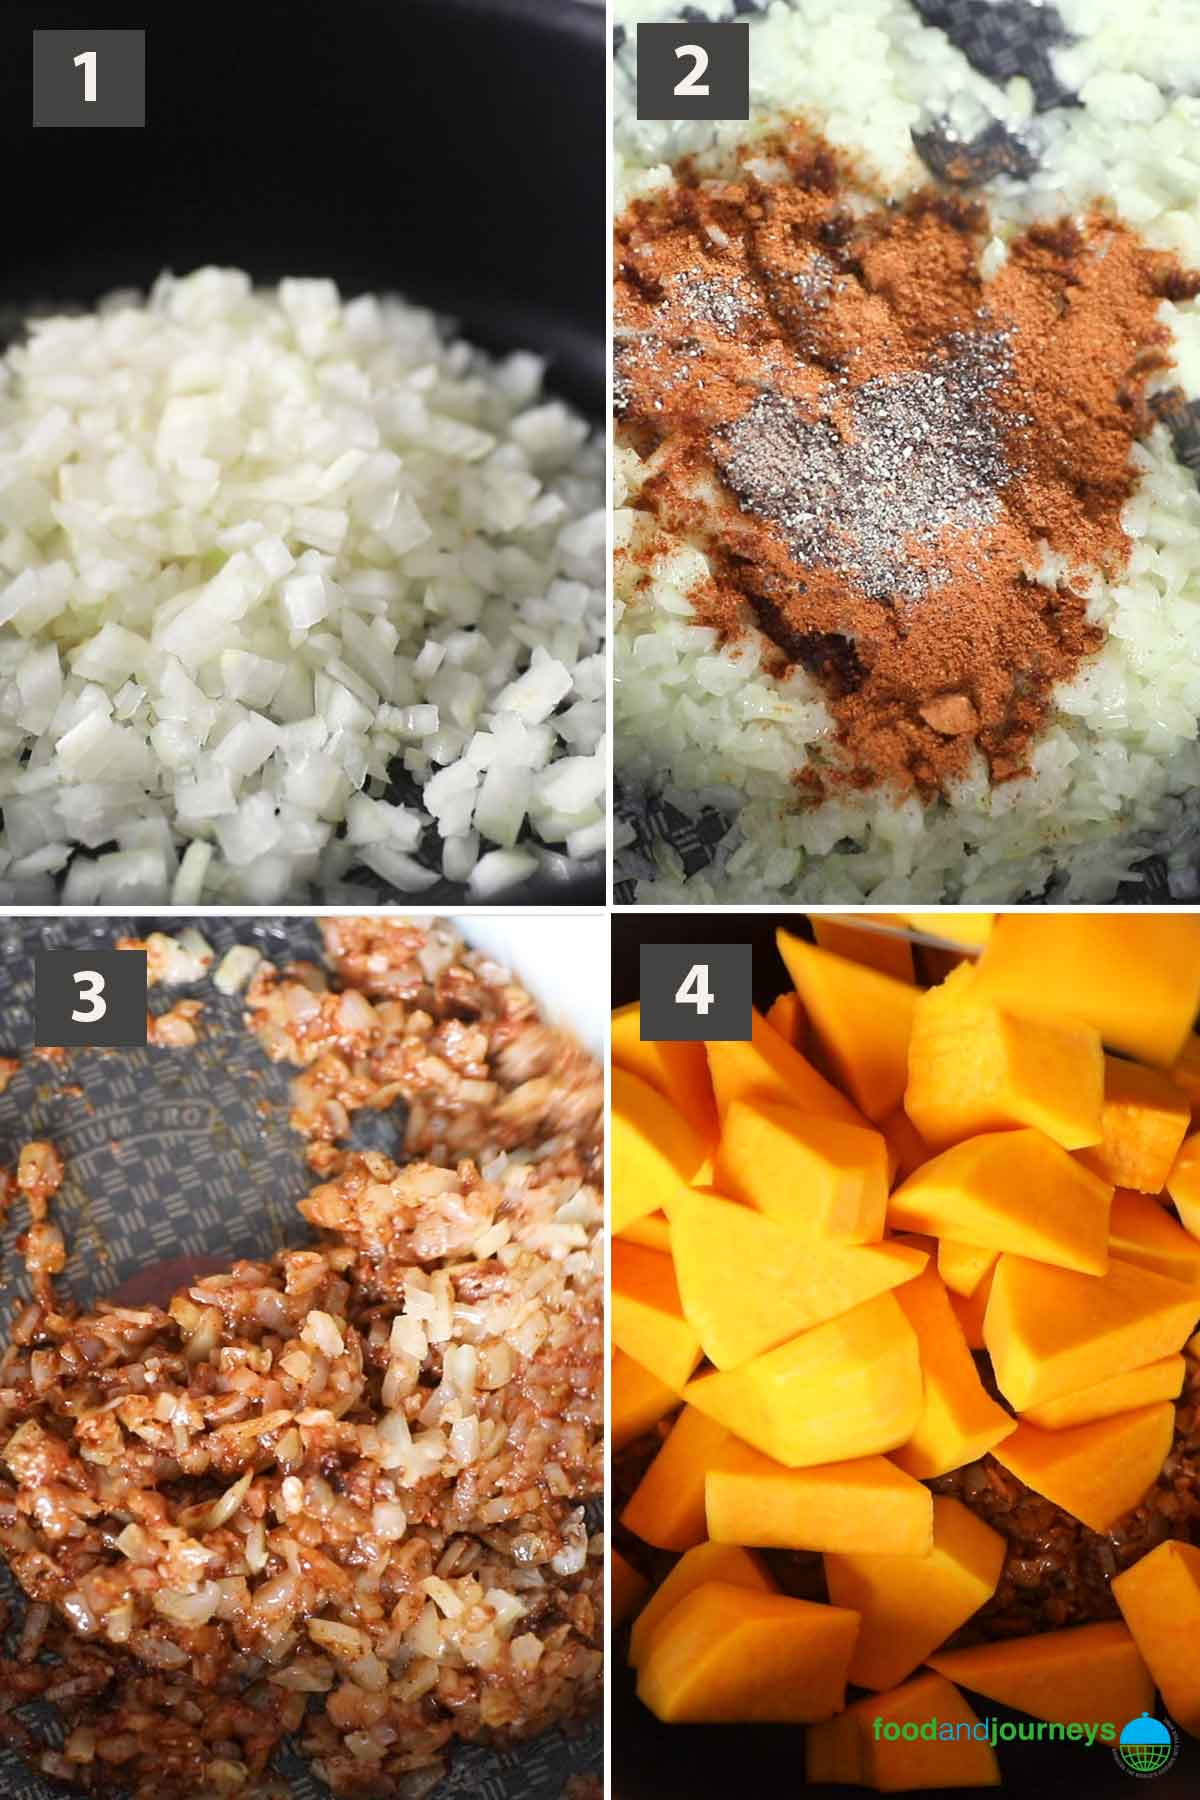 First part of a collage of images showing the step by step preparation of Ethiopian Pumpkin Stew.